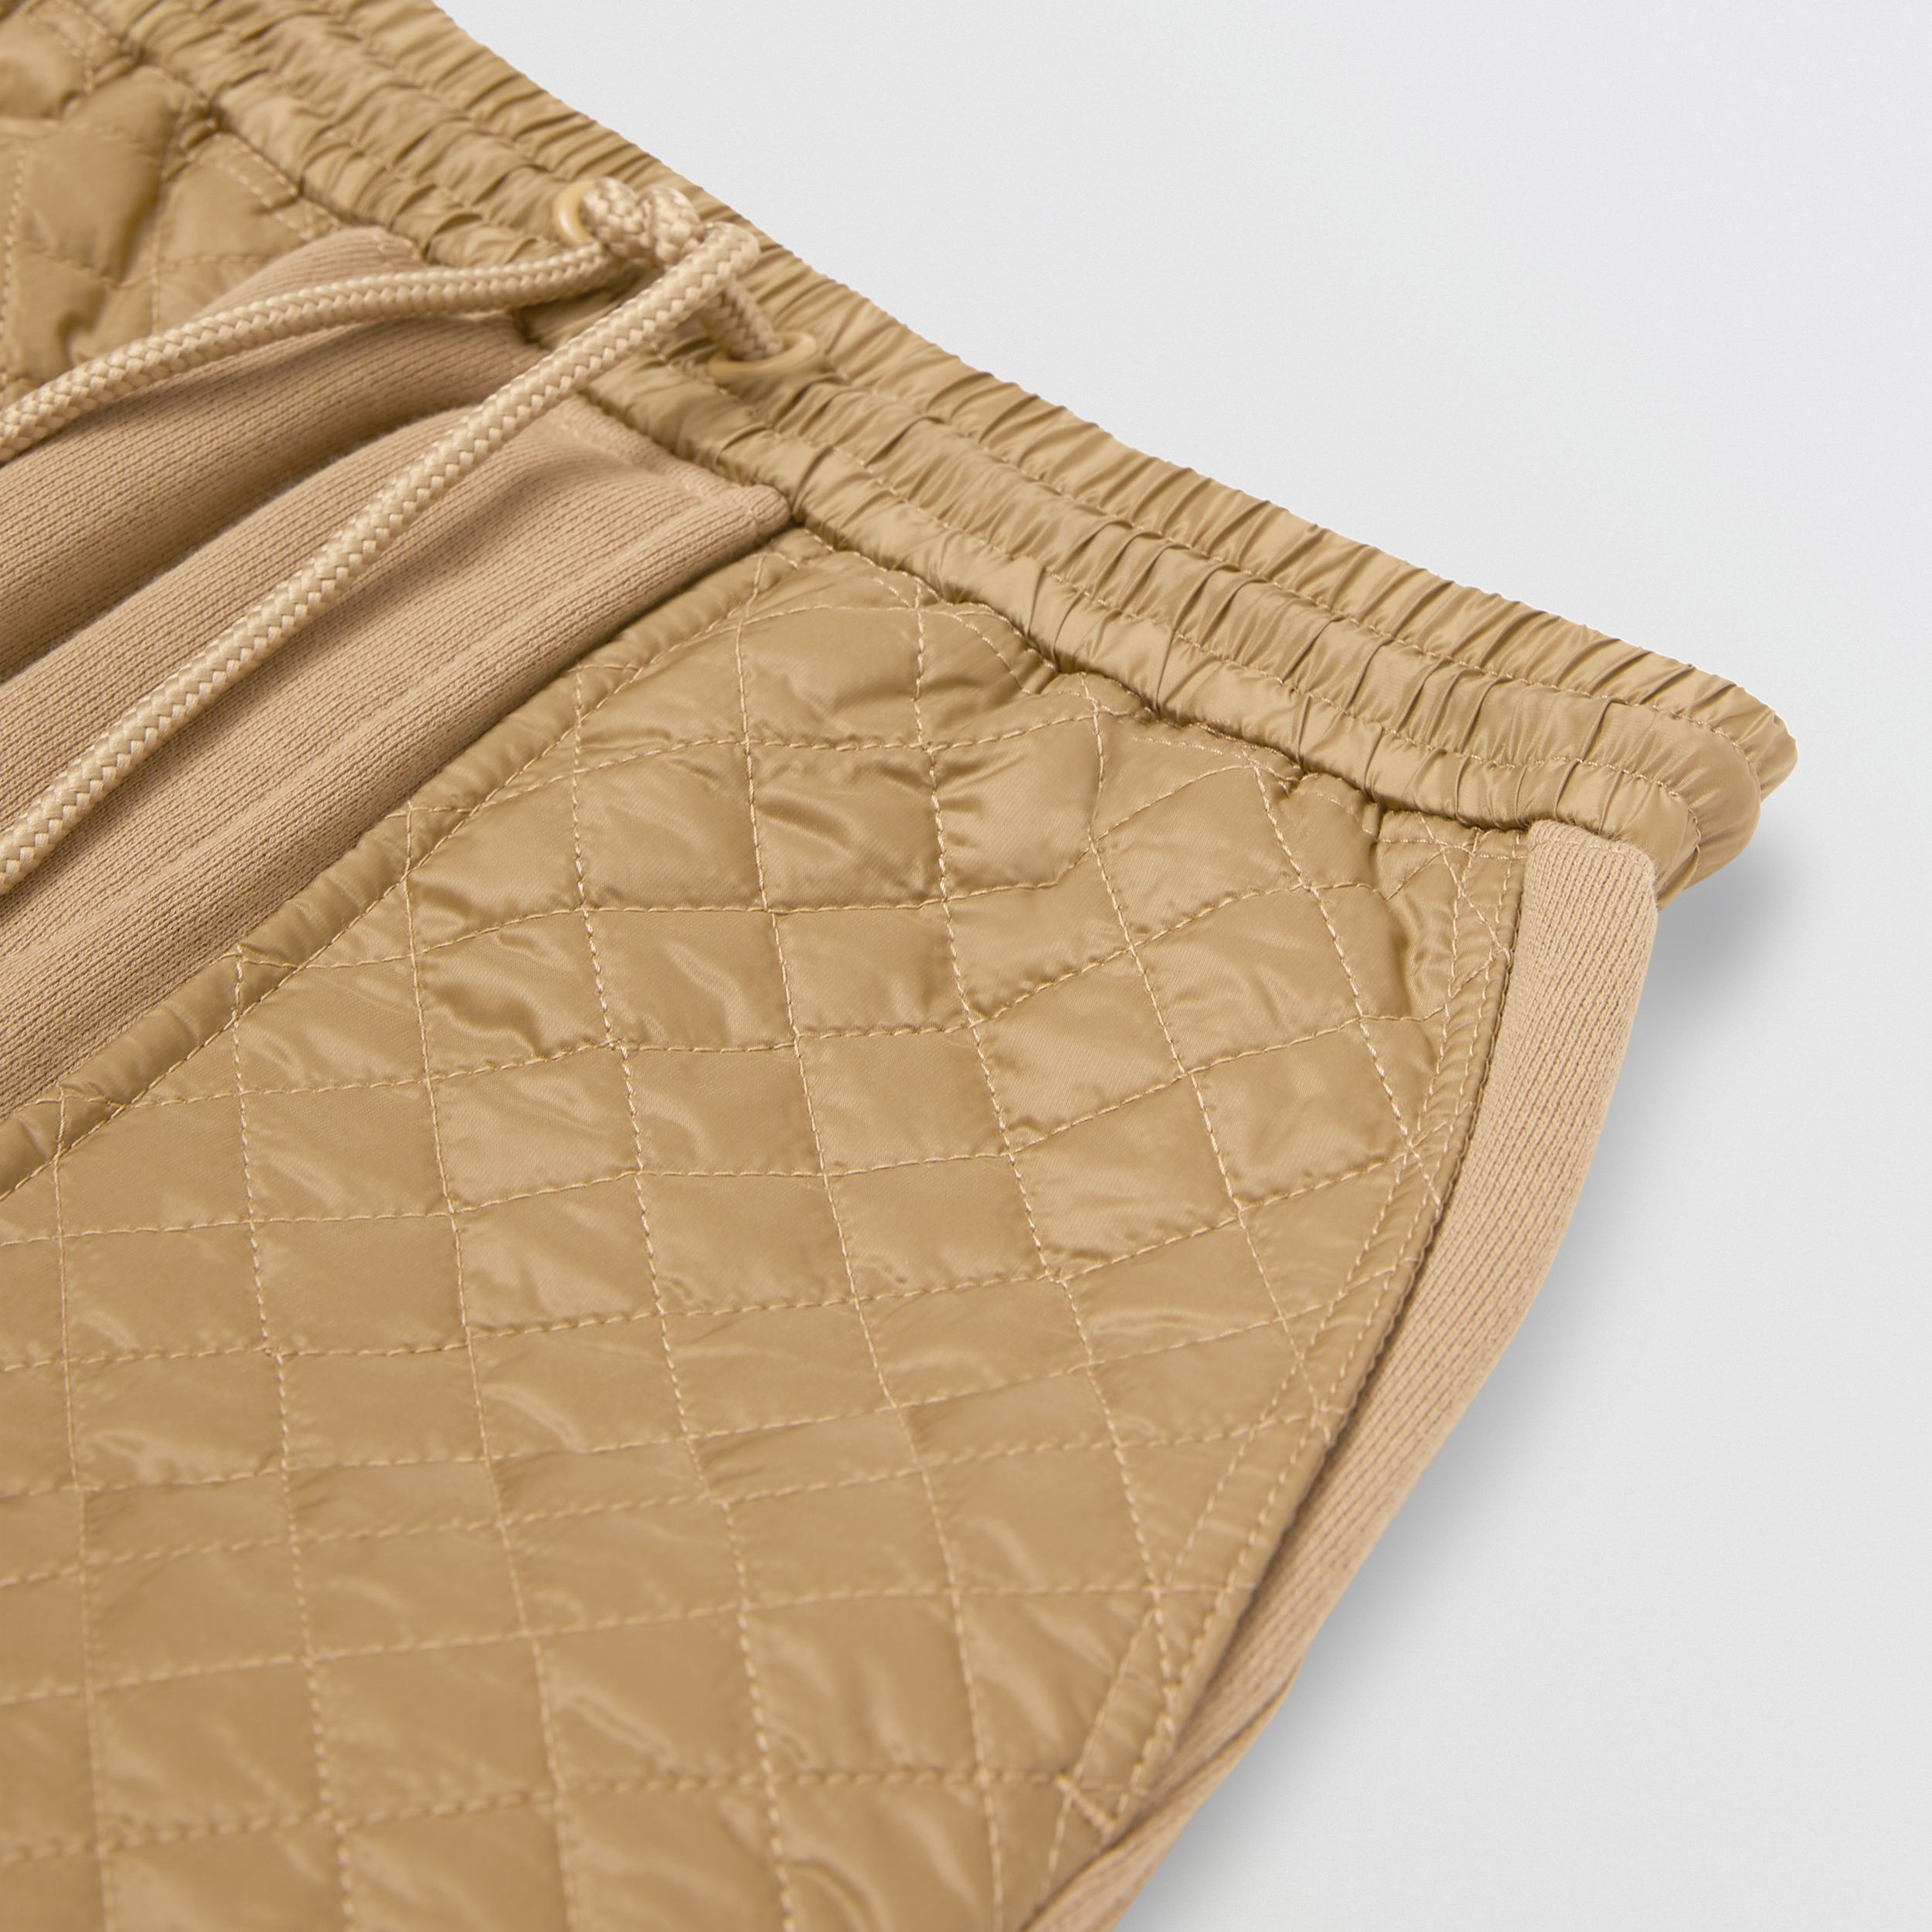 Monogram Quilted Panel Cotton Jogging Pants in Honey | Burberry - 2